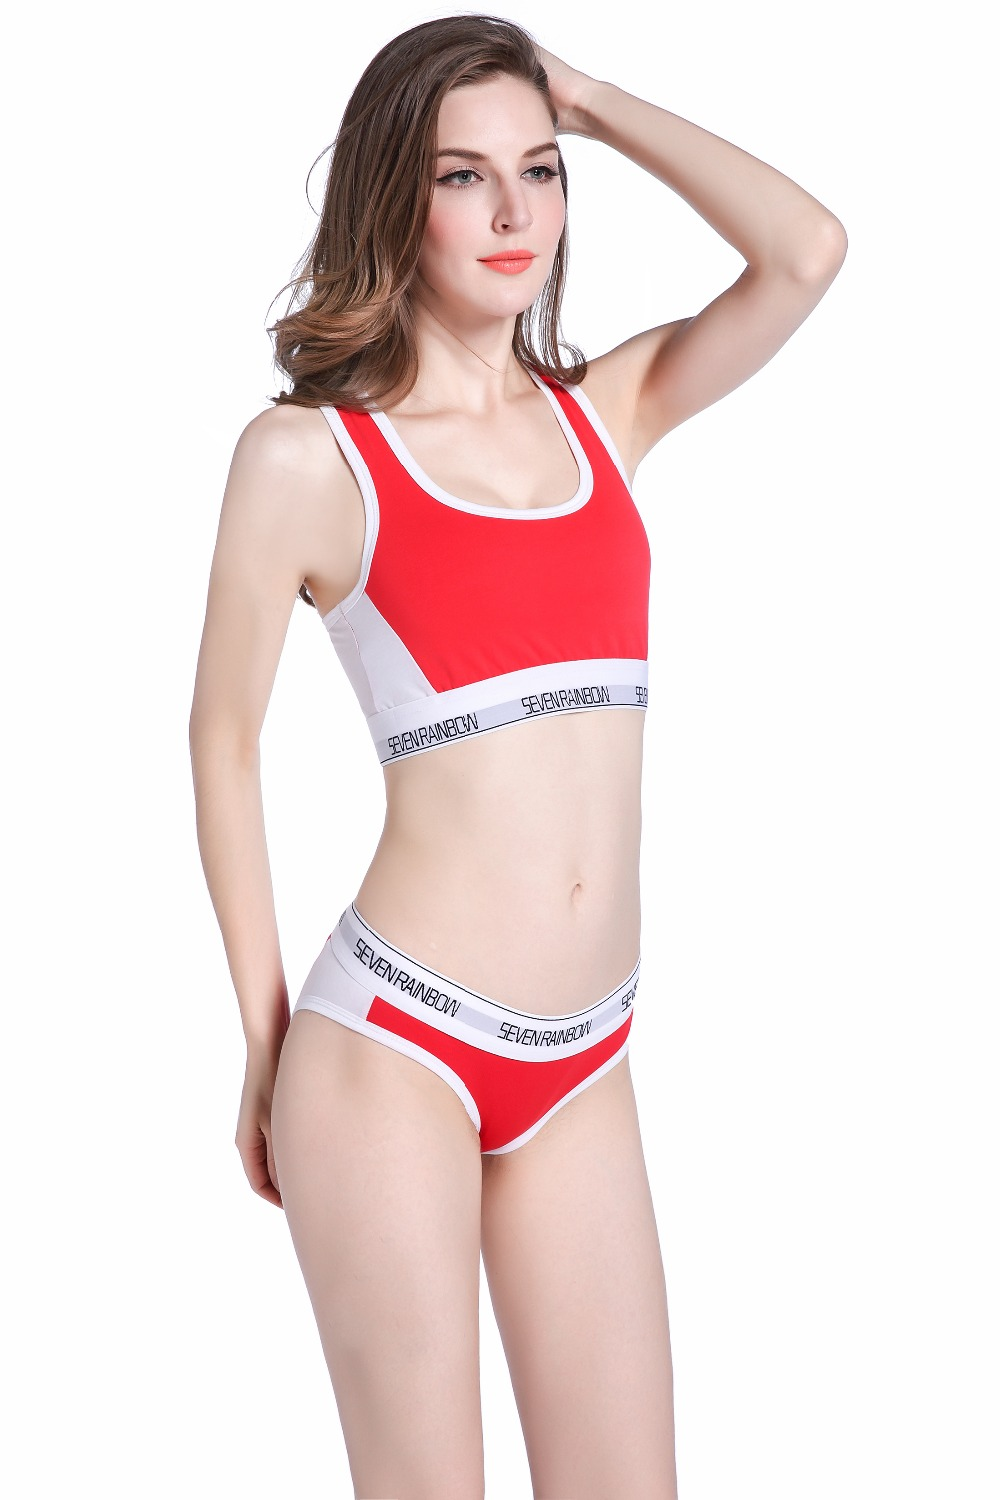 533340576f795 SEVENRAINBOW New style women s underwear color mixing Bra Set cotton Briefs  Bras Sets comfortable Vest intimates Seamless Sexy